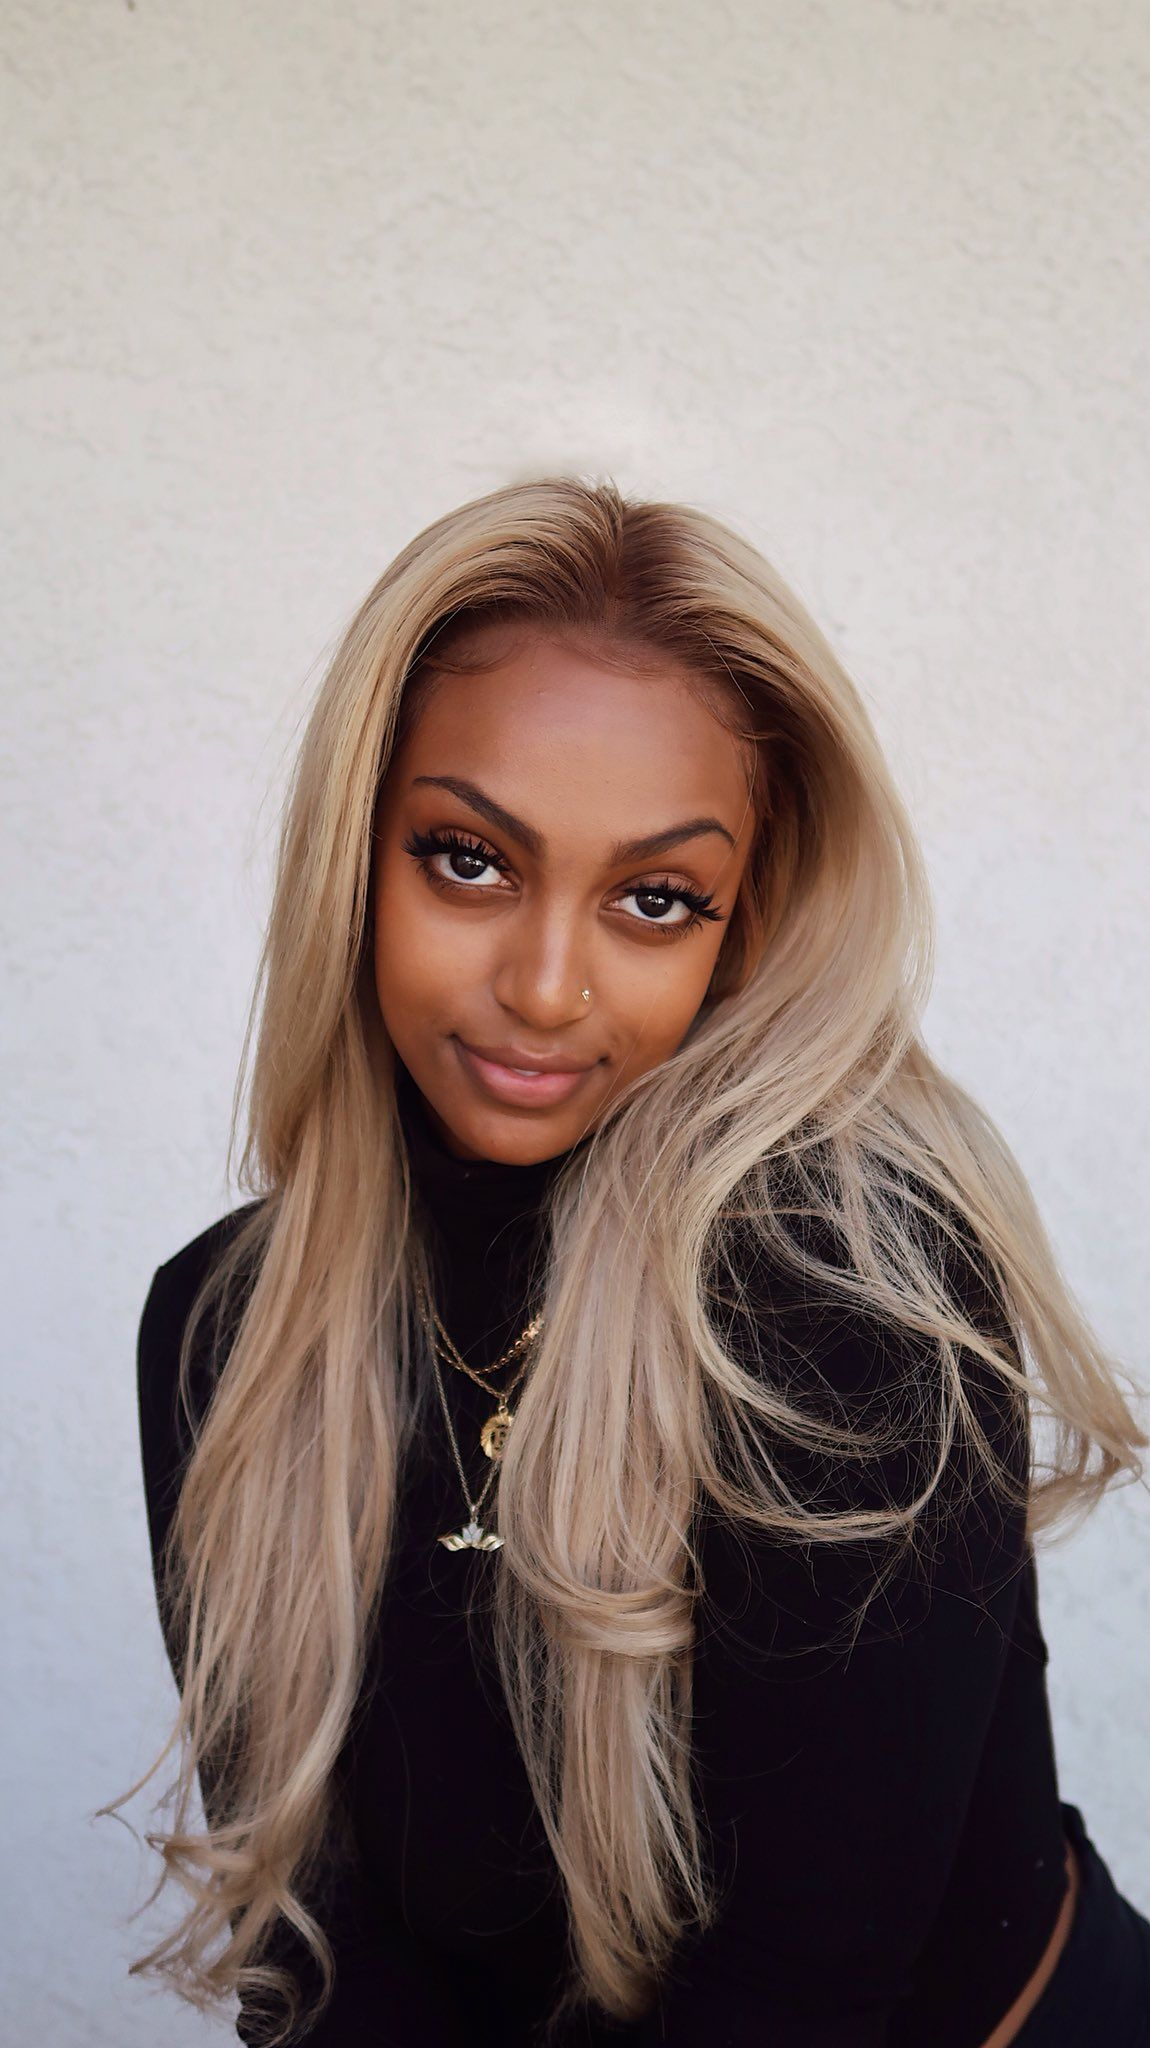 Blonde Wigs For Black Women Lace Front Lace Wigs For Sale Pre Plucked And Bleached Lace Wig Blonde Bob Lace Front Yaki Lace Front Wig